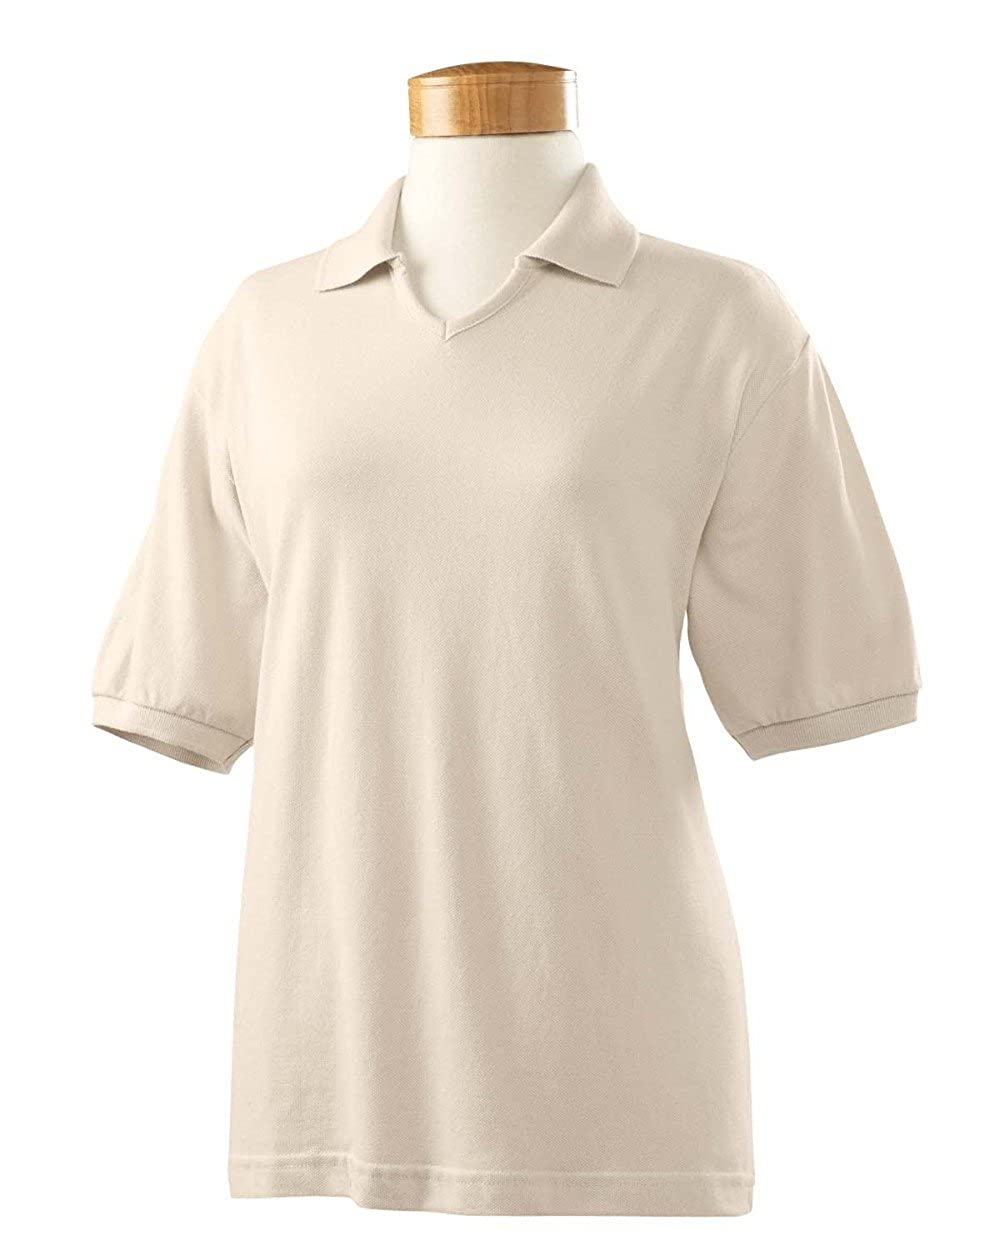 Harvard Square Women s Short Sleeve 100% Washed Pique V-Neck Polo Shirt  HS302 Beige Small at Amazon Women s Clothing store  0bccb2bc6